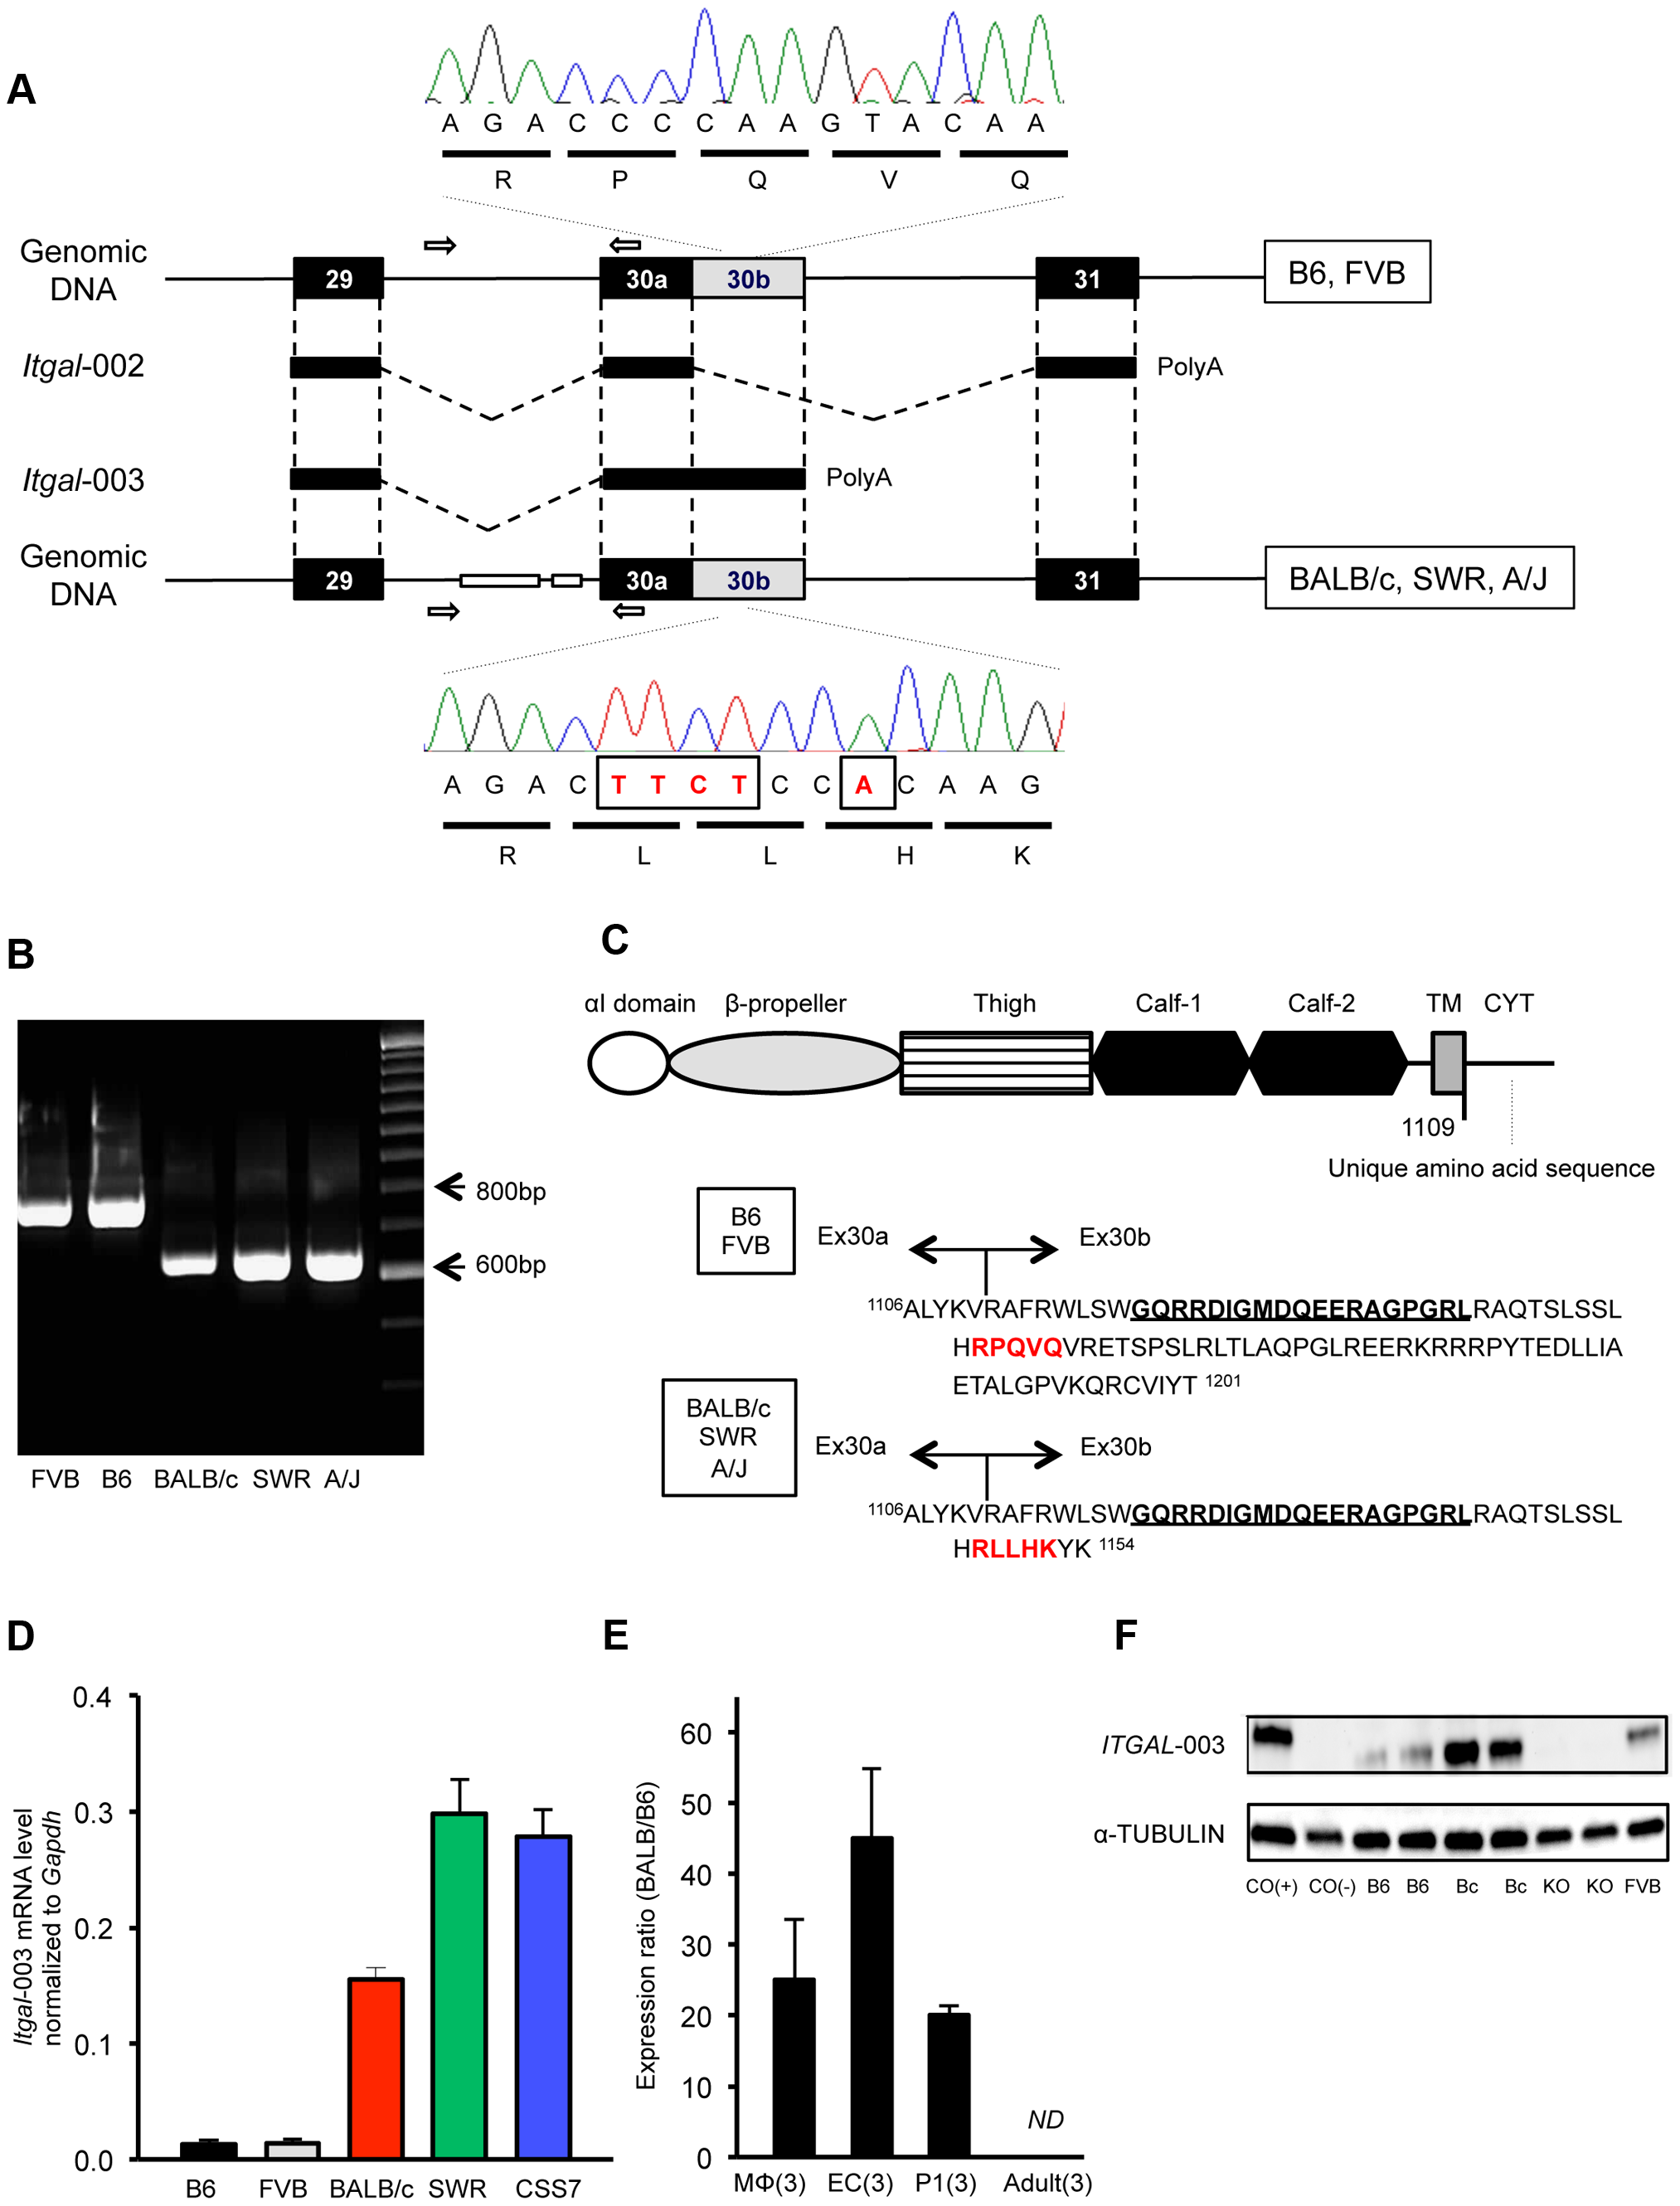 A truncated cytoplasmic tail of the protein and increased mRNA level of a splice variant of <i>Itgal</i> correspond with allelic variation between mouse strains.